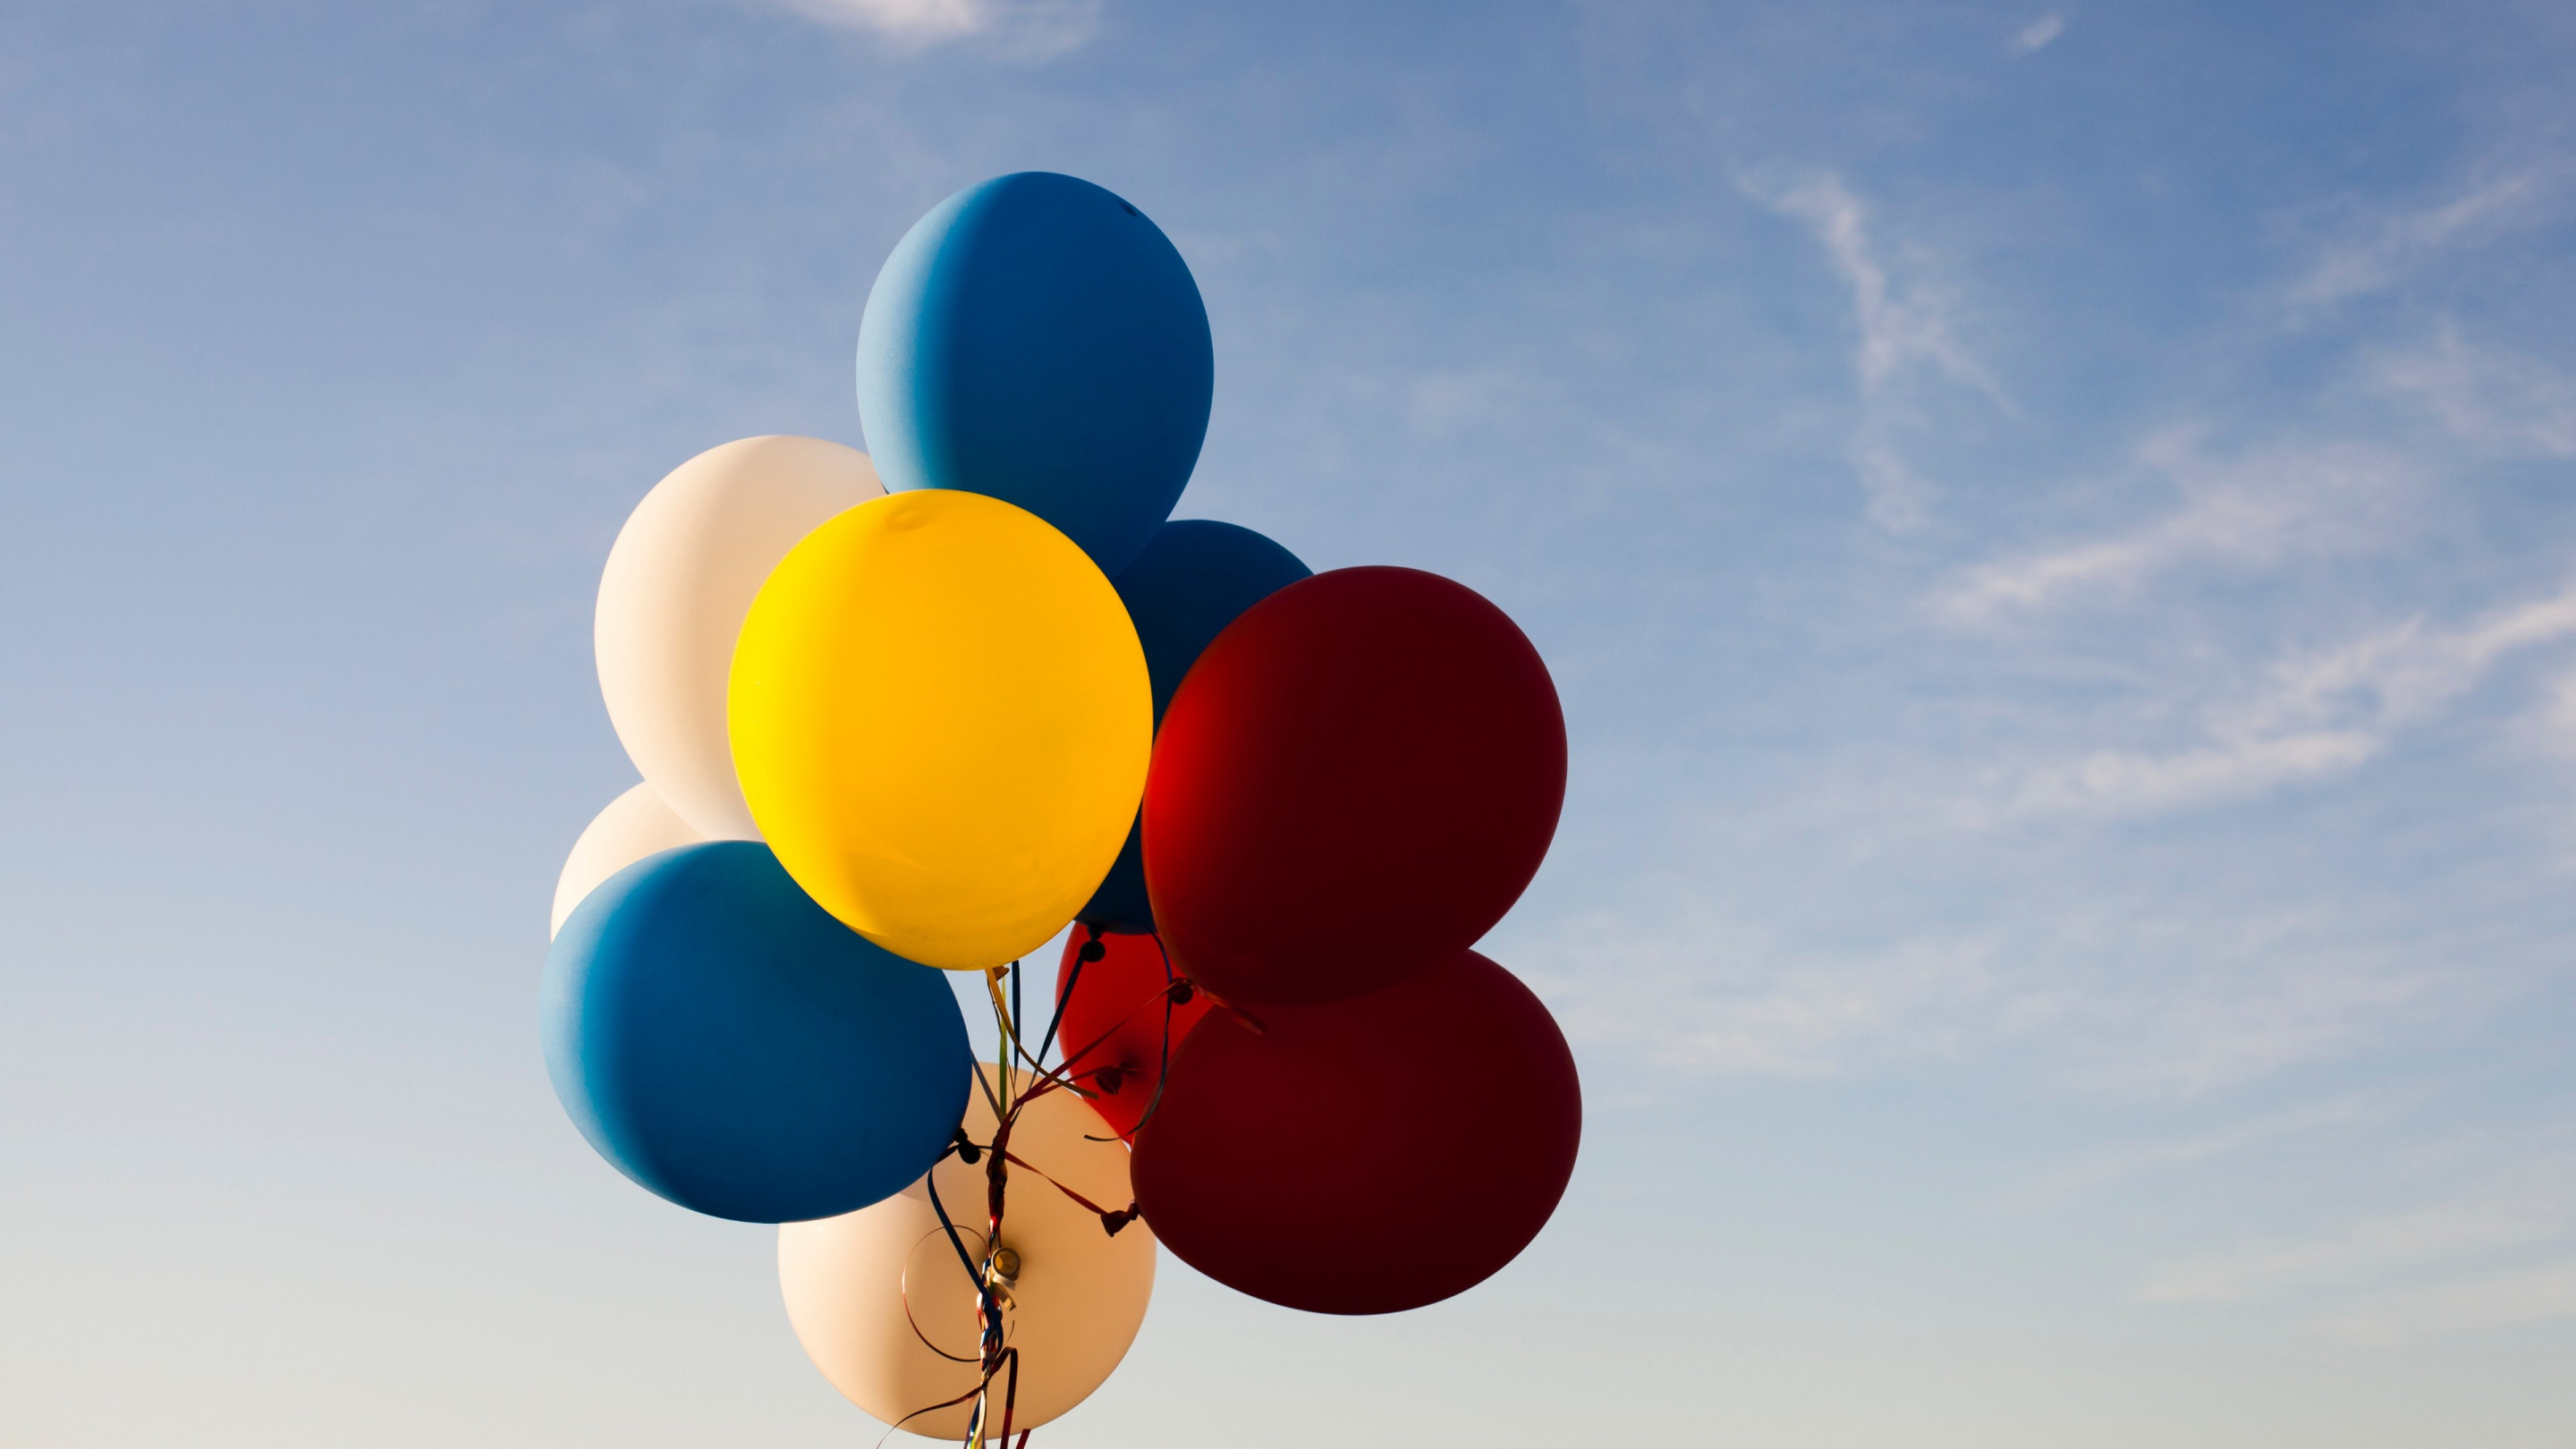 Colored balloons wallpaper 2880x1620